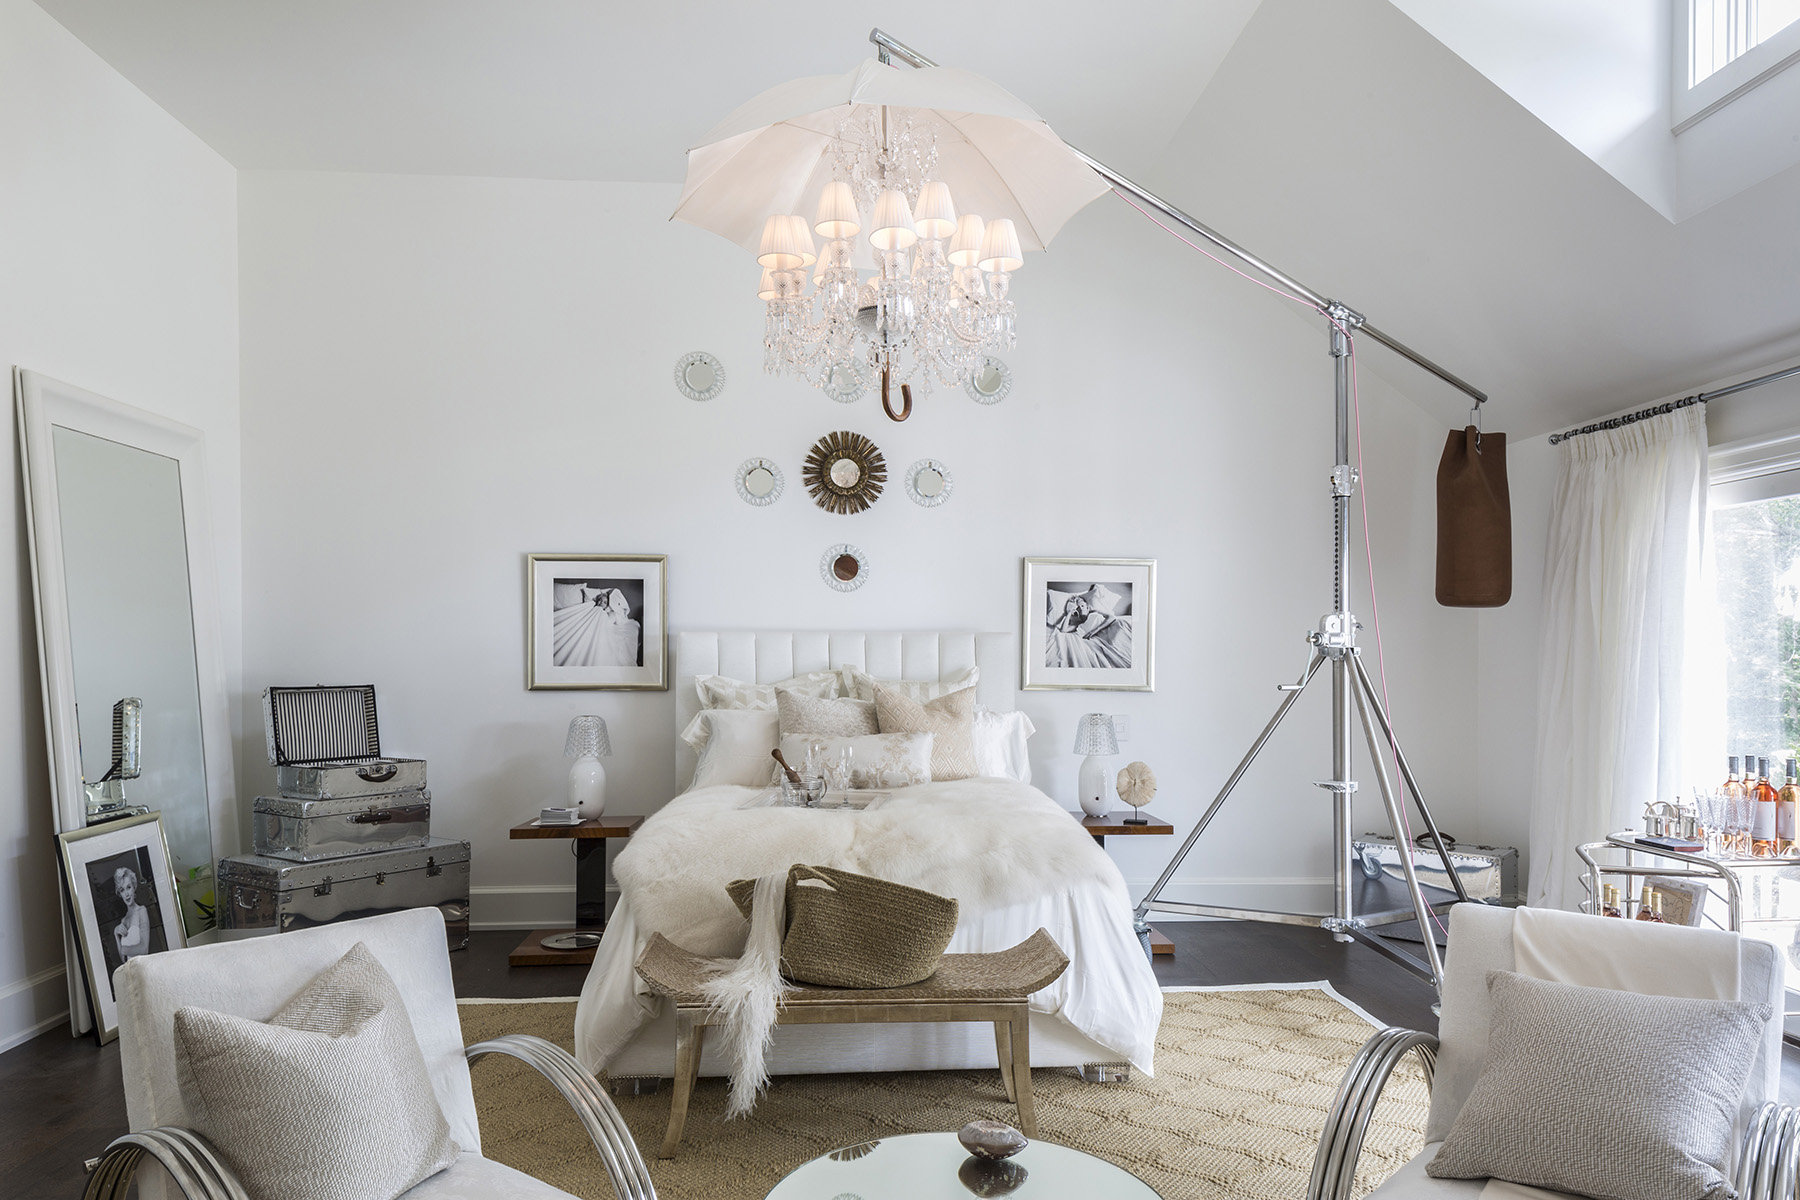 New kdhamptons design diary take a tour inside the first for Bedroom ideas hamptons